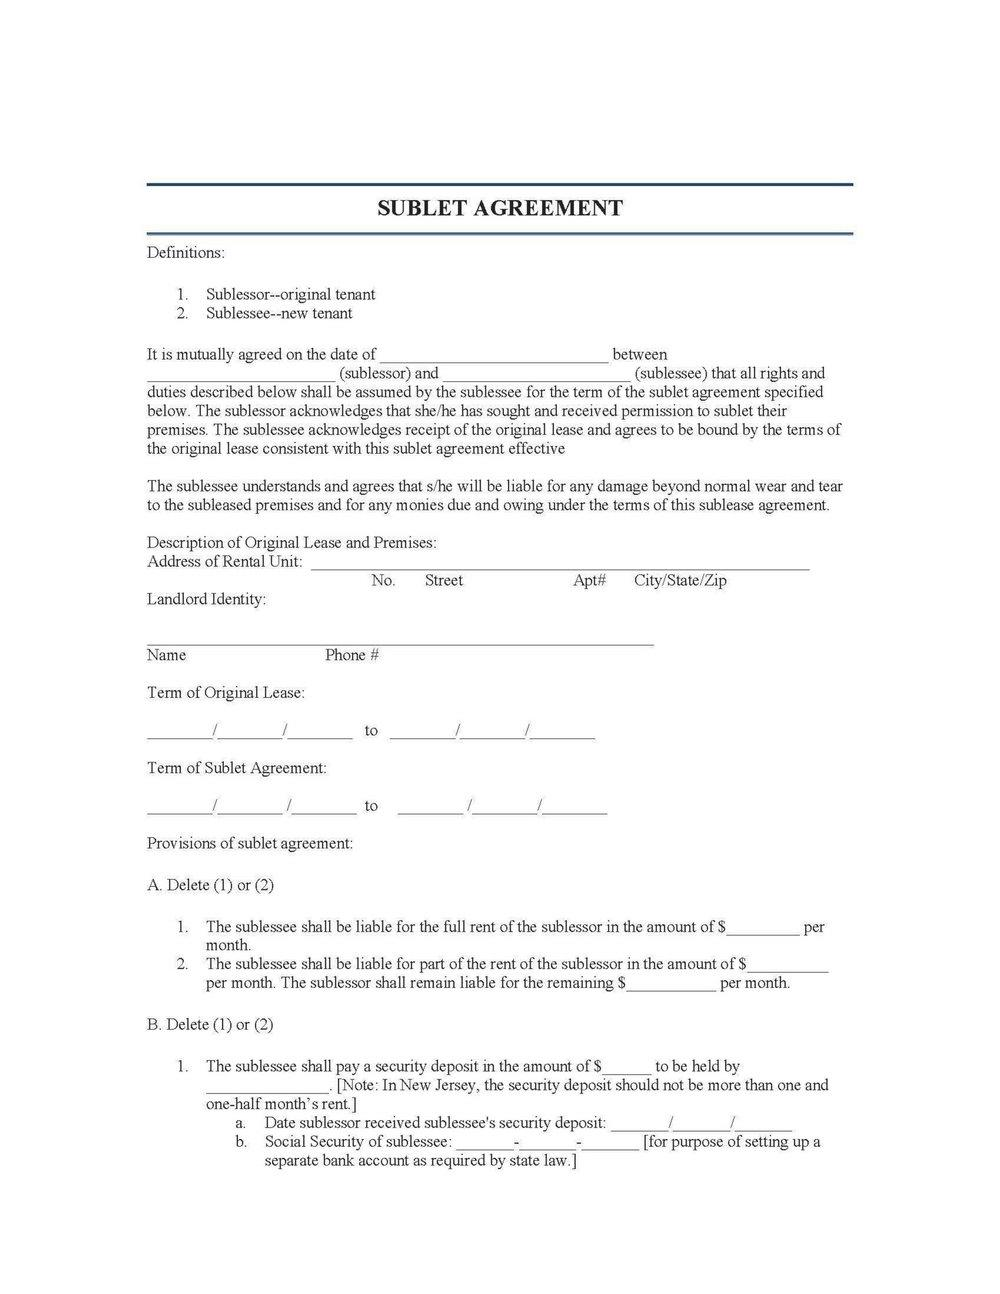 Sublet Agreement Form Bc